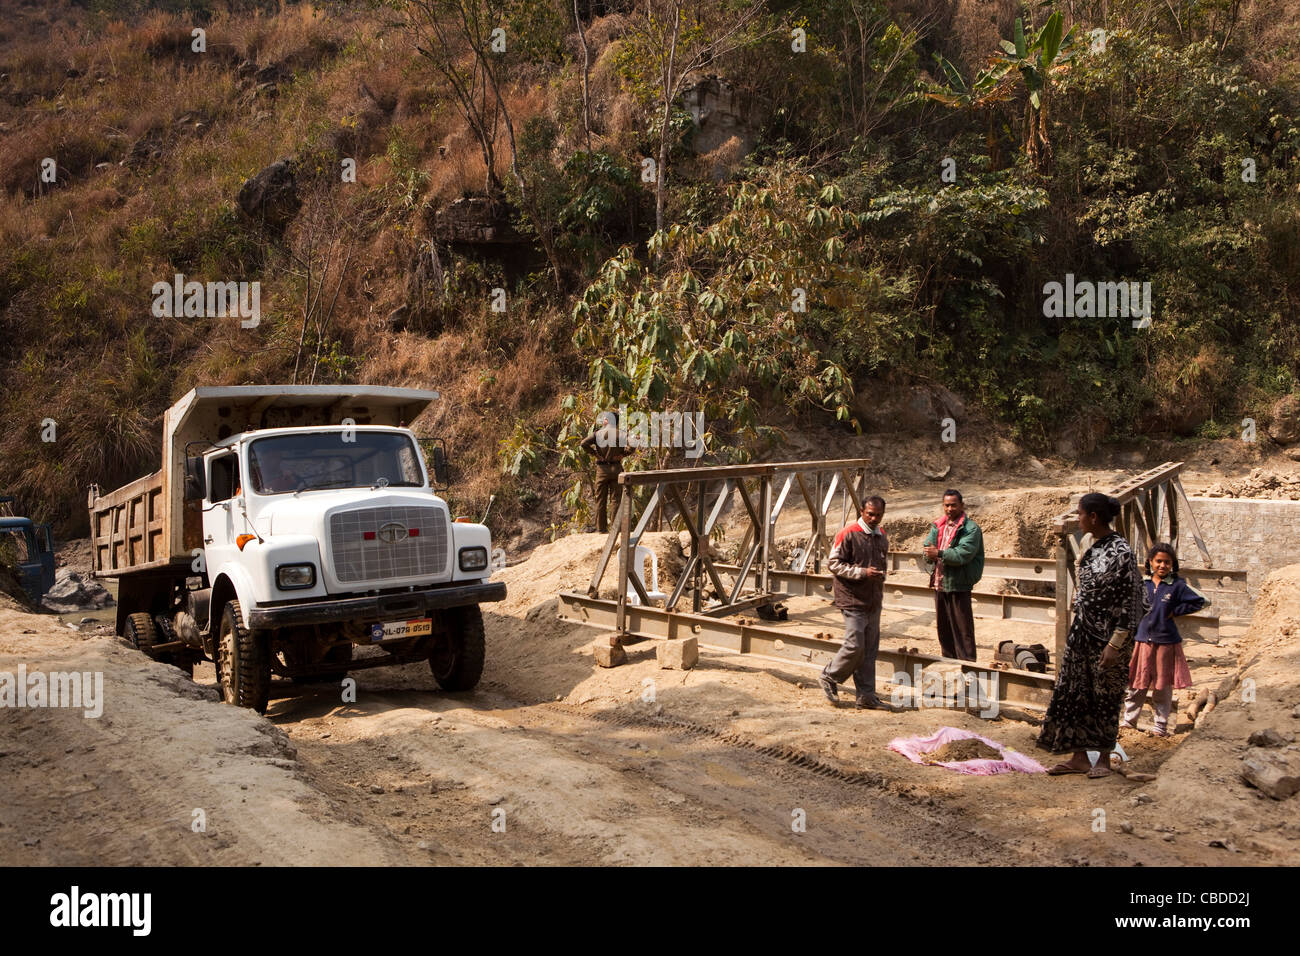 India, Nagaland, Khonoma, tata truck rising from river ford where bridge is being constructed - Stock Image